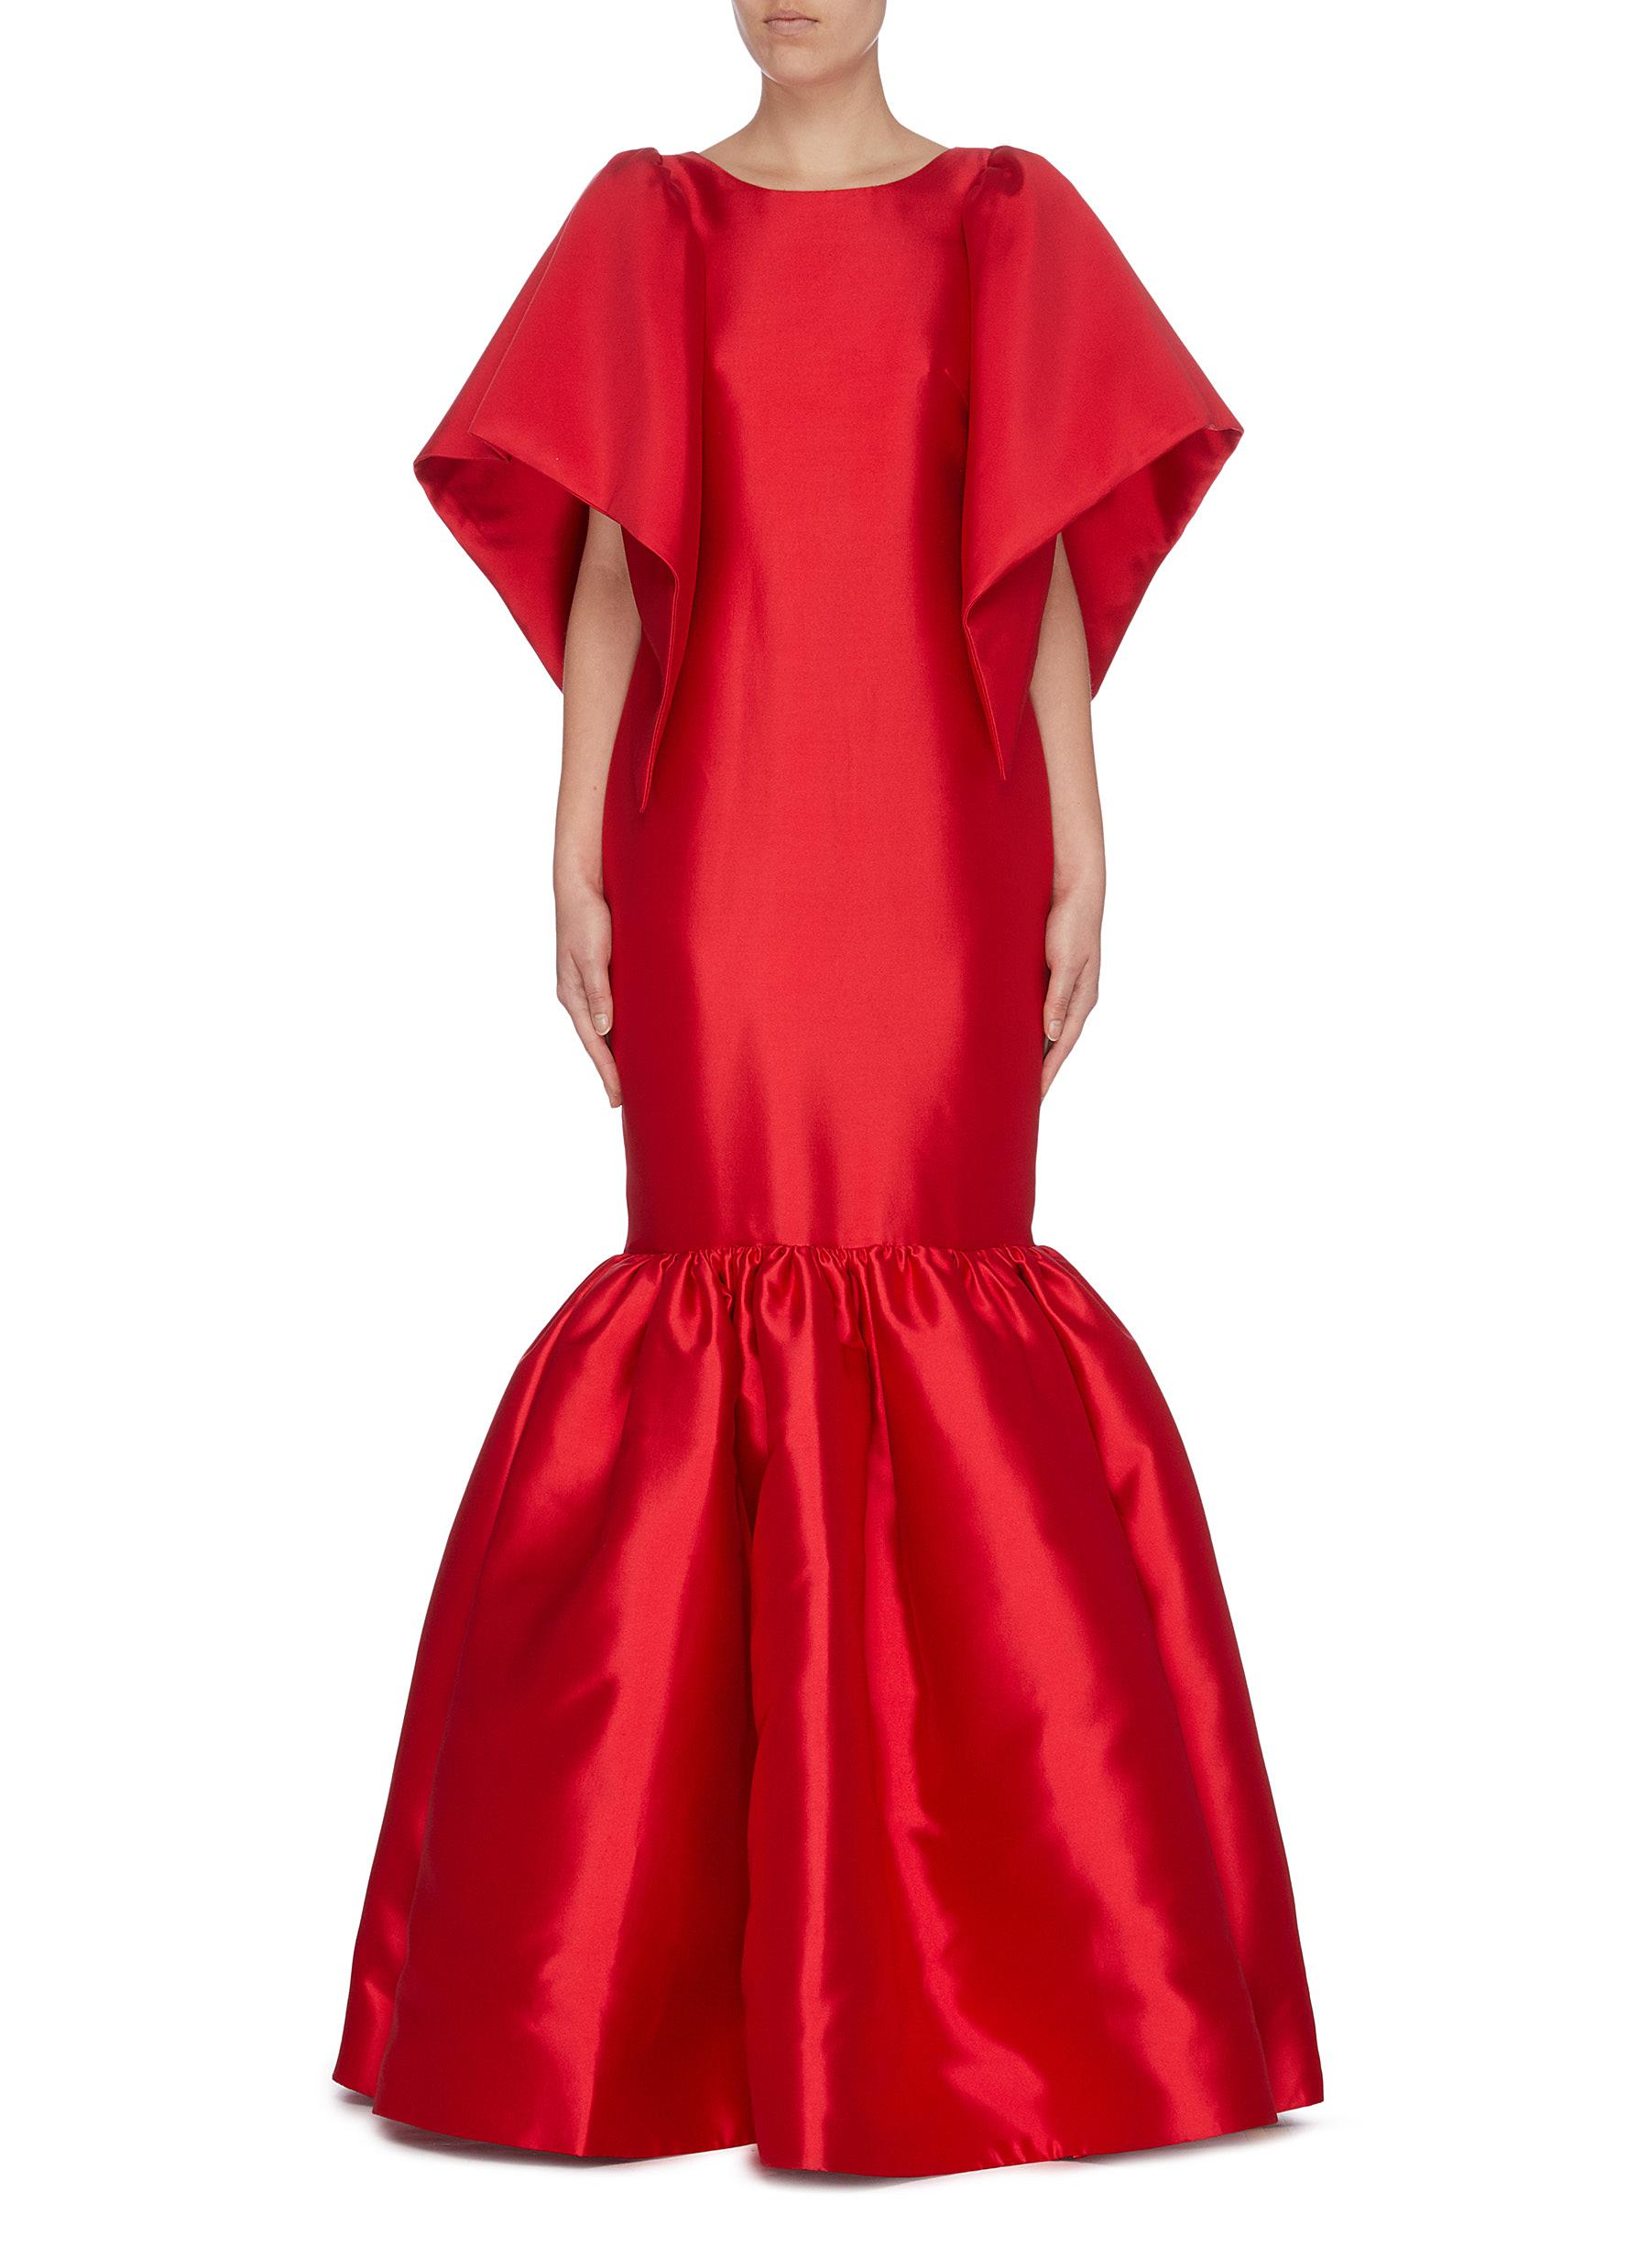 Palermo flared sleeve cutout back satin peplum gown by Leal Daccarett